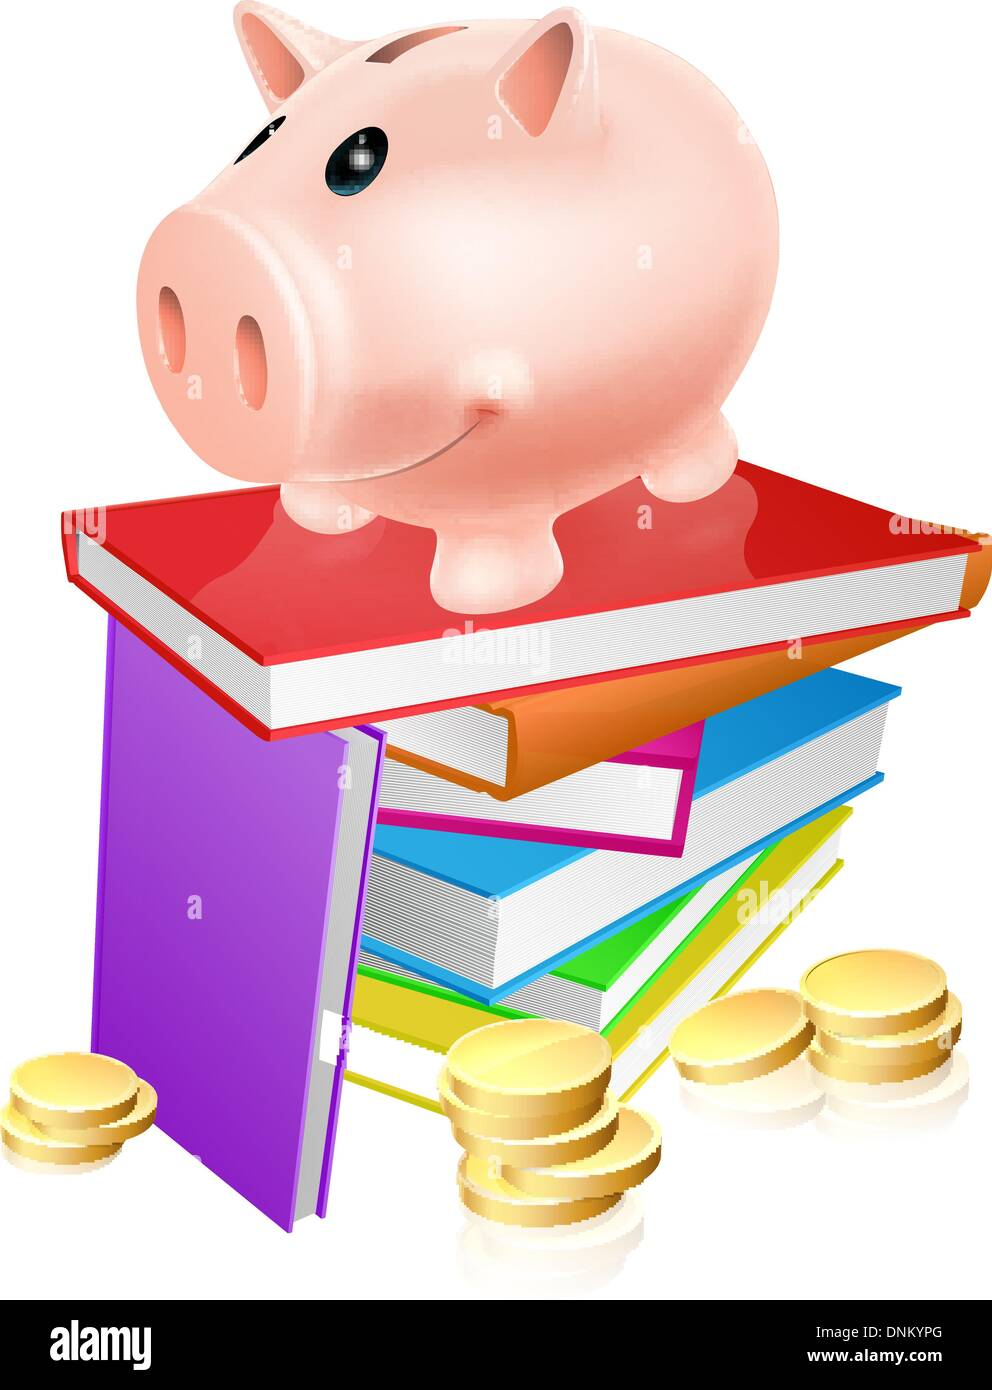 A piggy bank standing on a stack of books and surrounded by coins. Concept for eduction savings or other literacy related budget - Stock Image